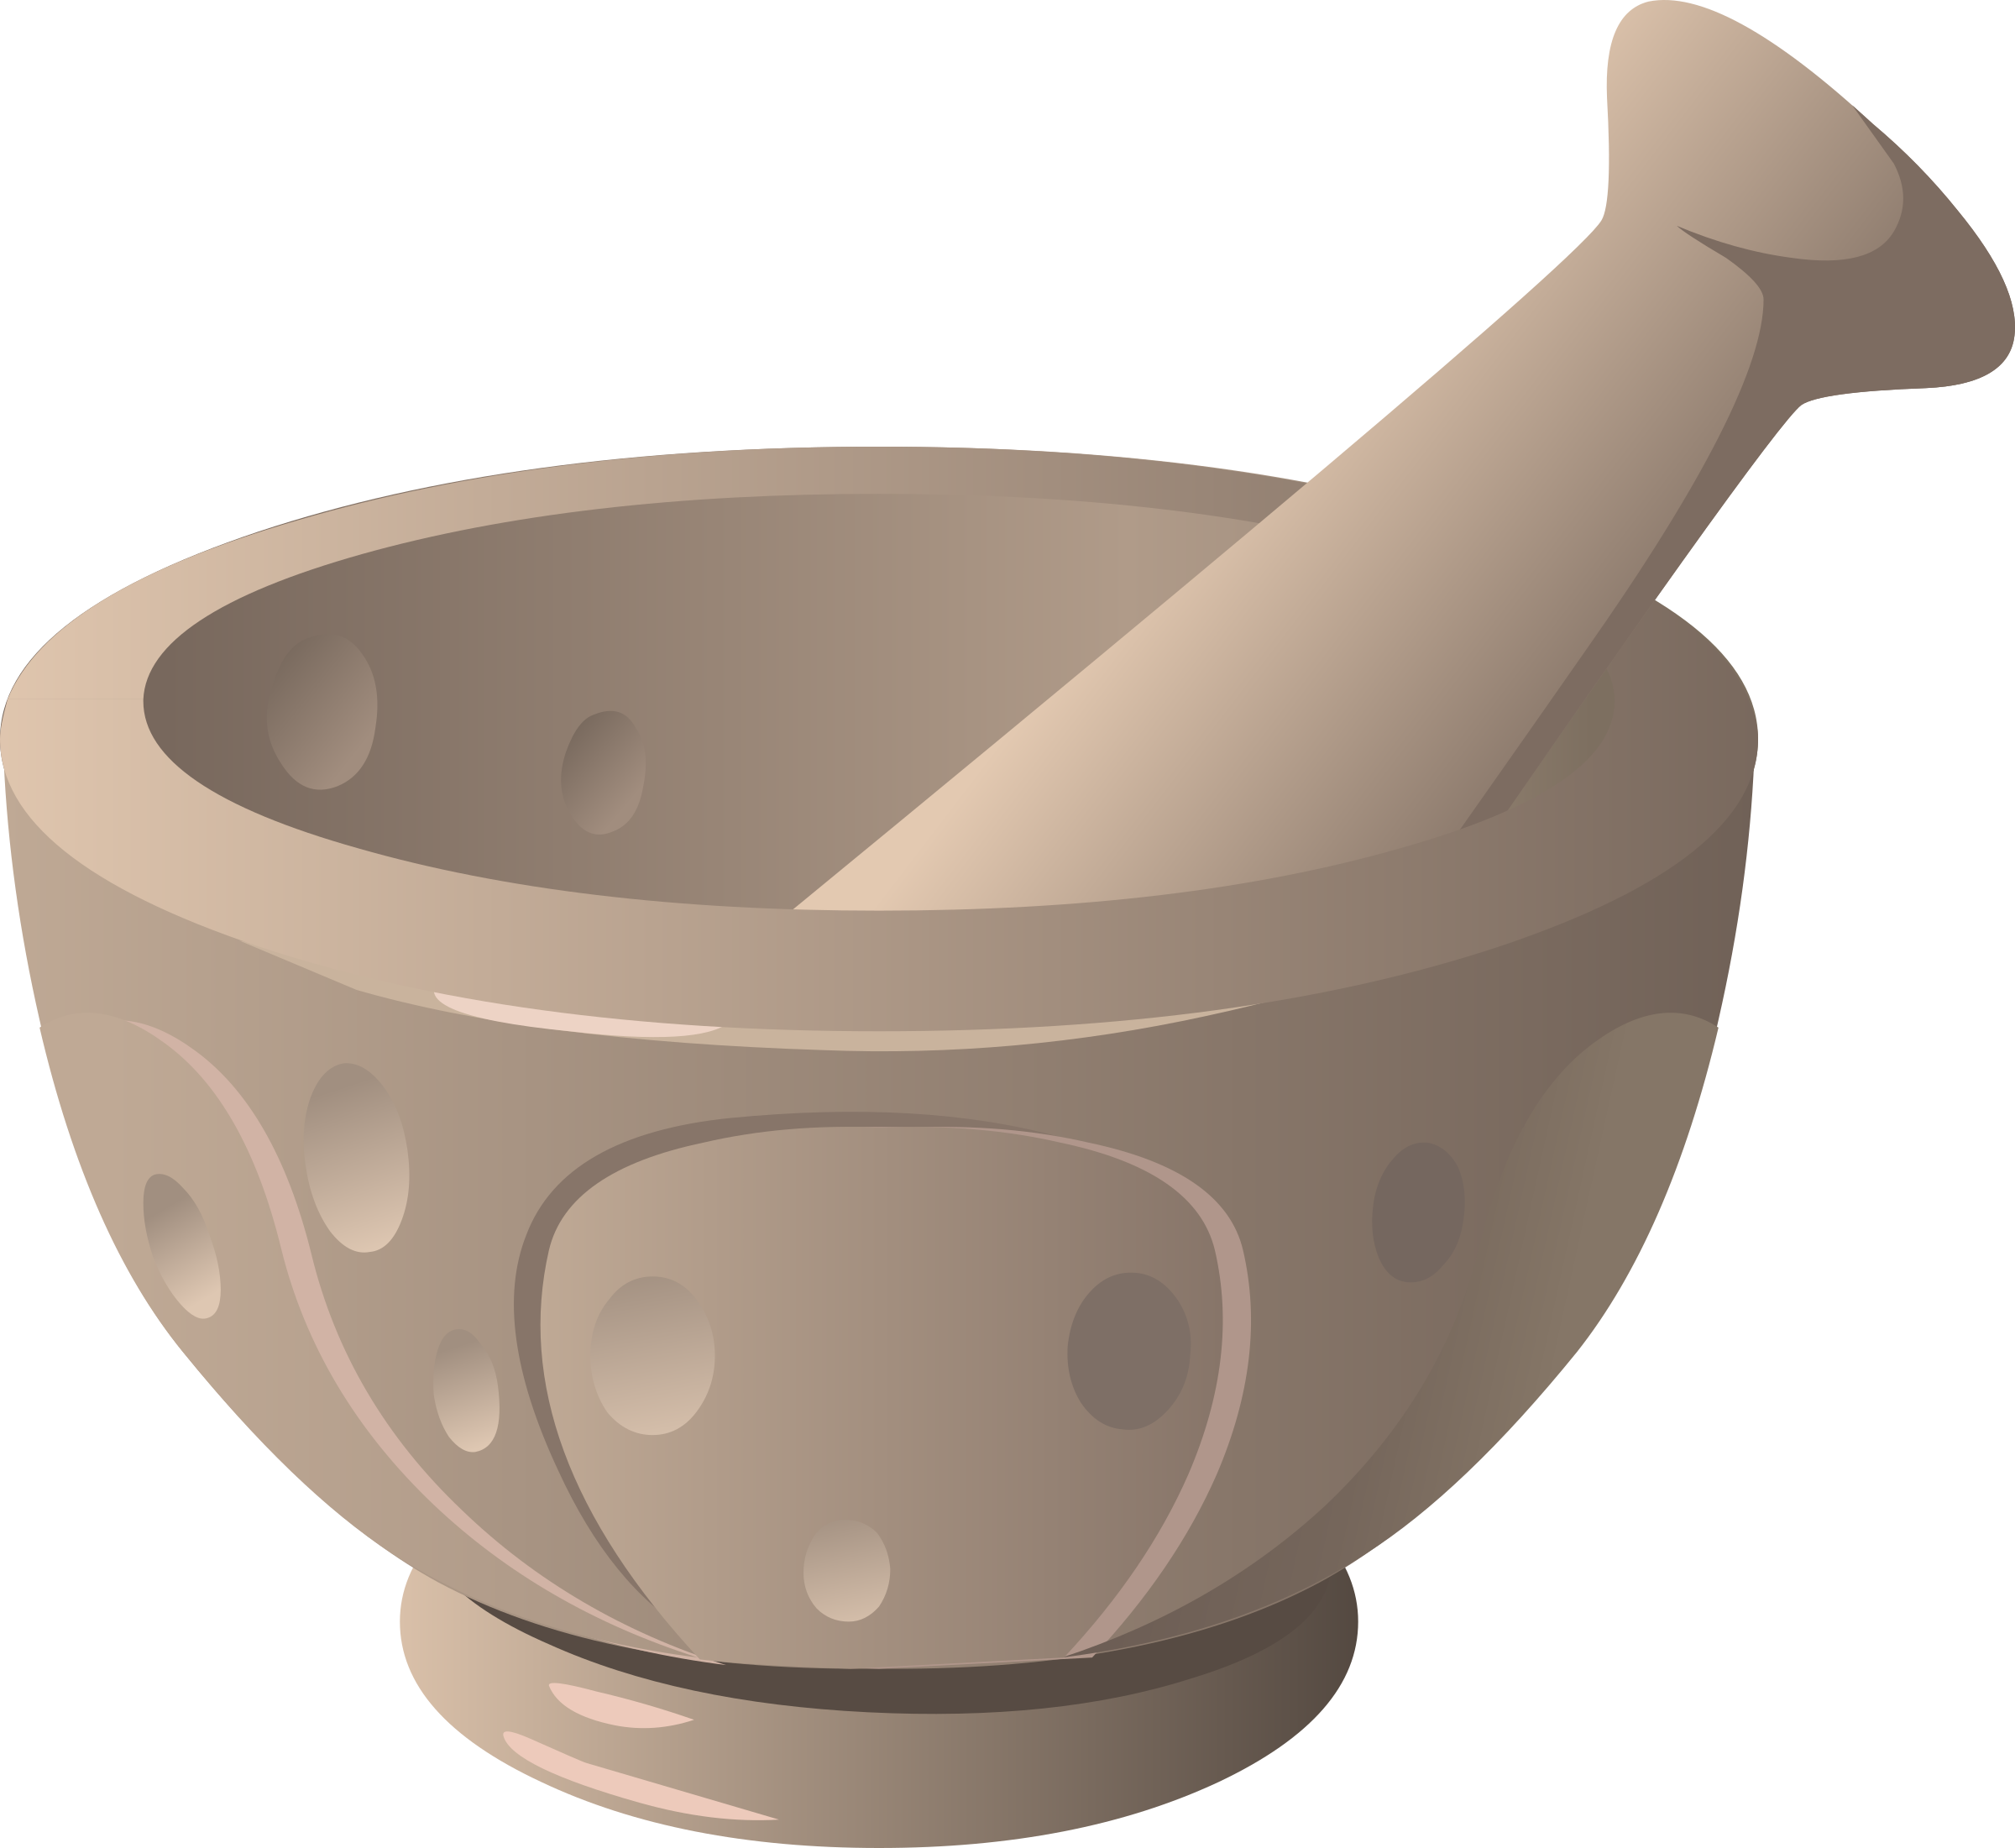 Tools Mortar And Pestle by glitch